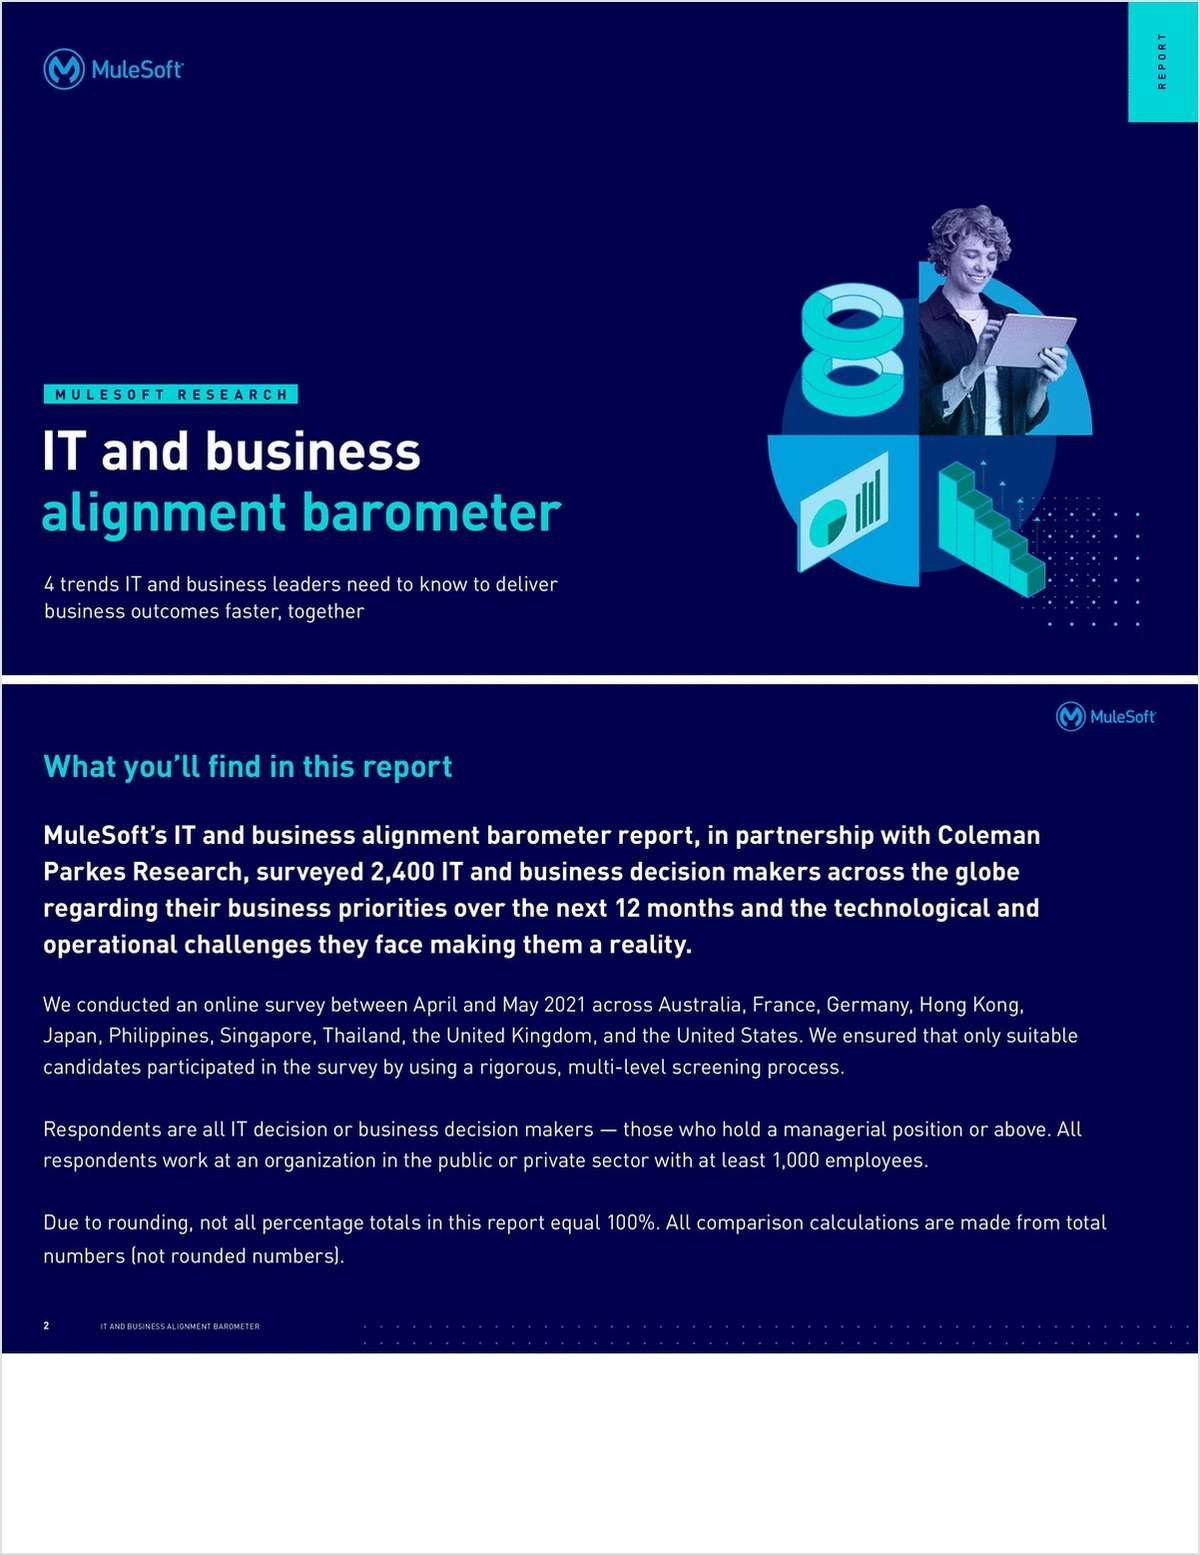 IT and Business Alignment Barometer